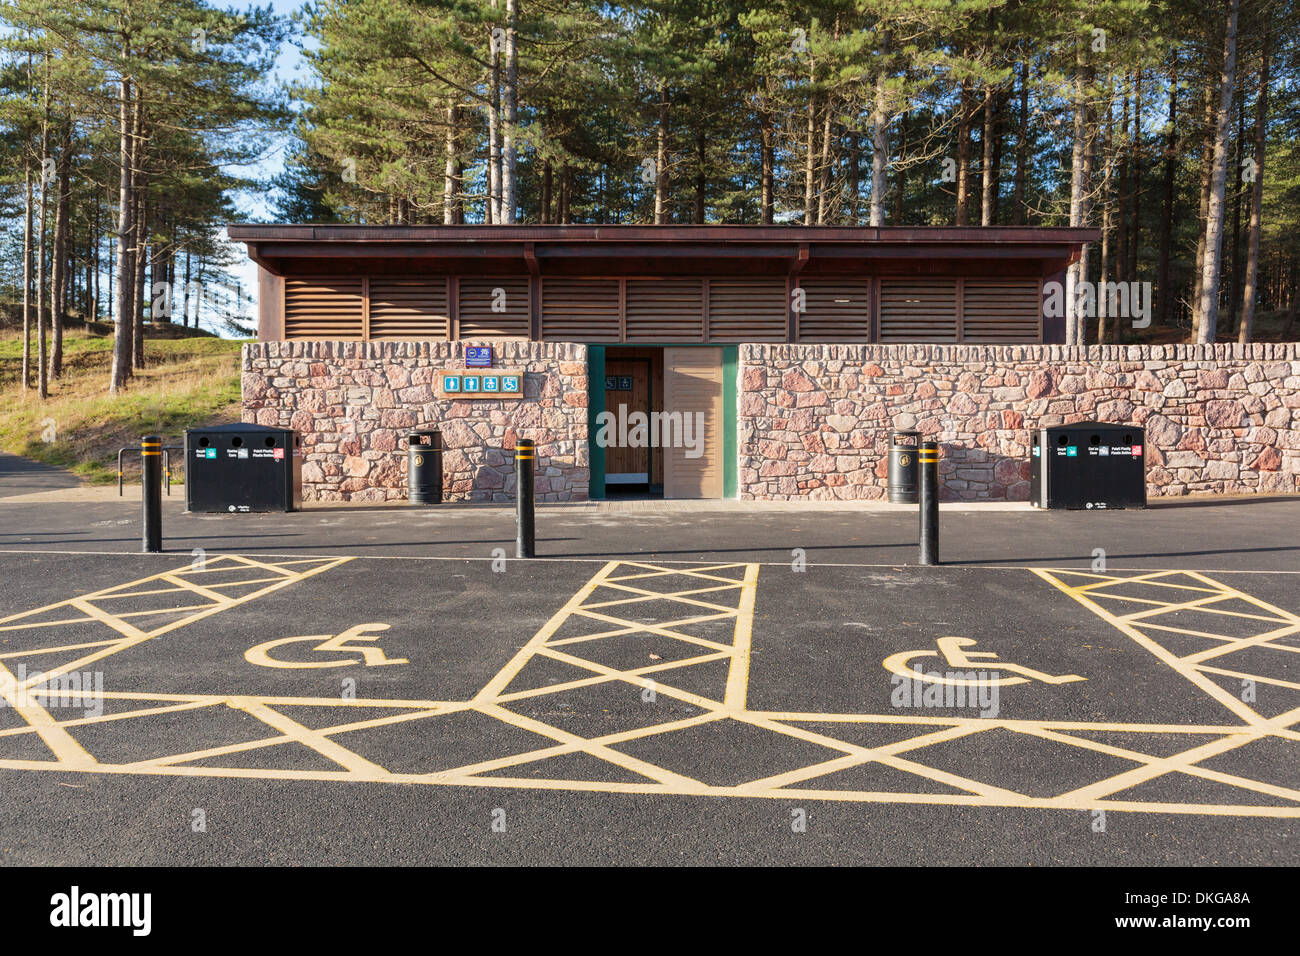 Disabled parking bays outside a toilet block in newly renovated car park in Newborough Forest Isle of Anglesey North Wales UK - Stock Image